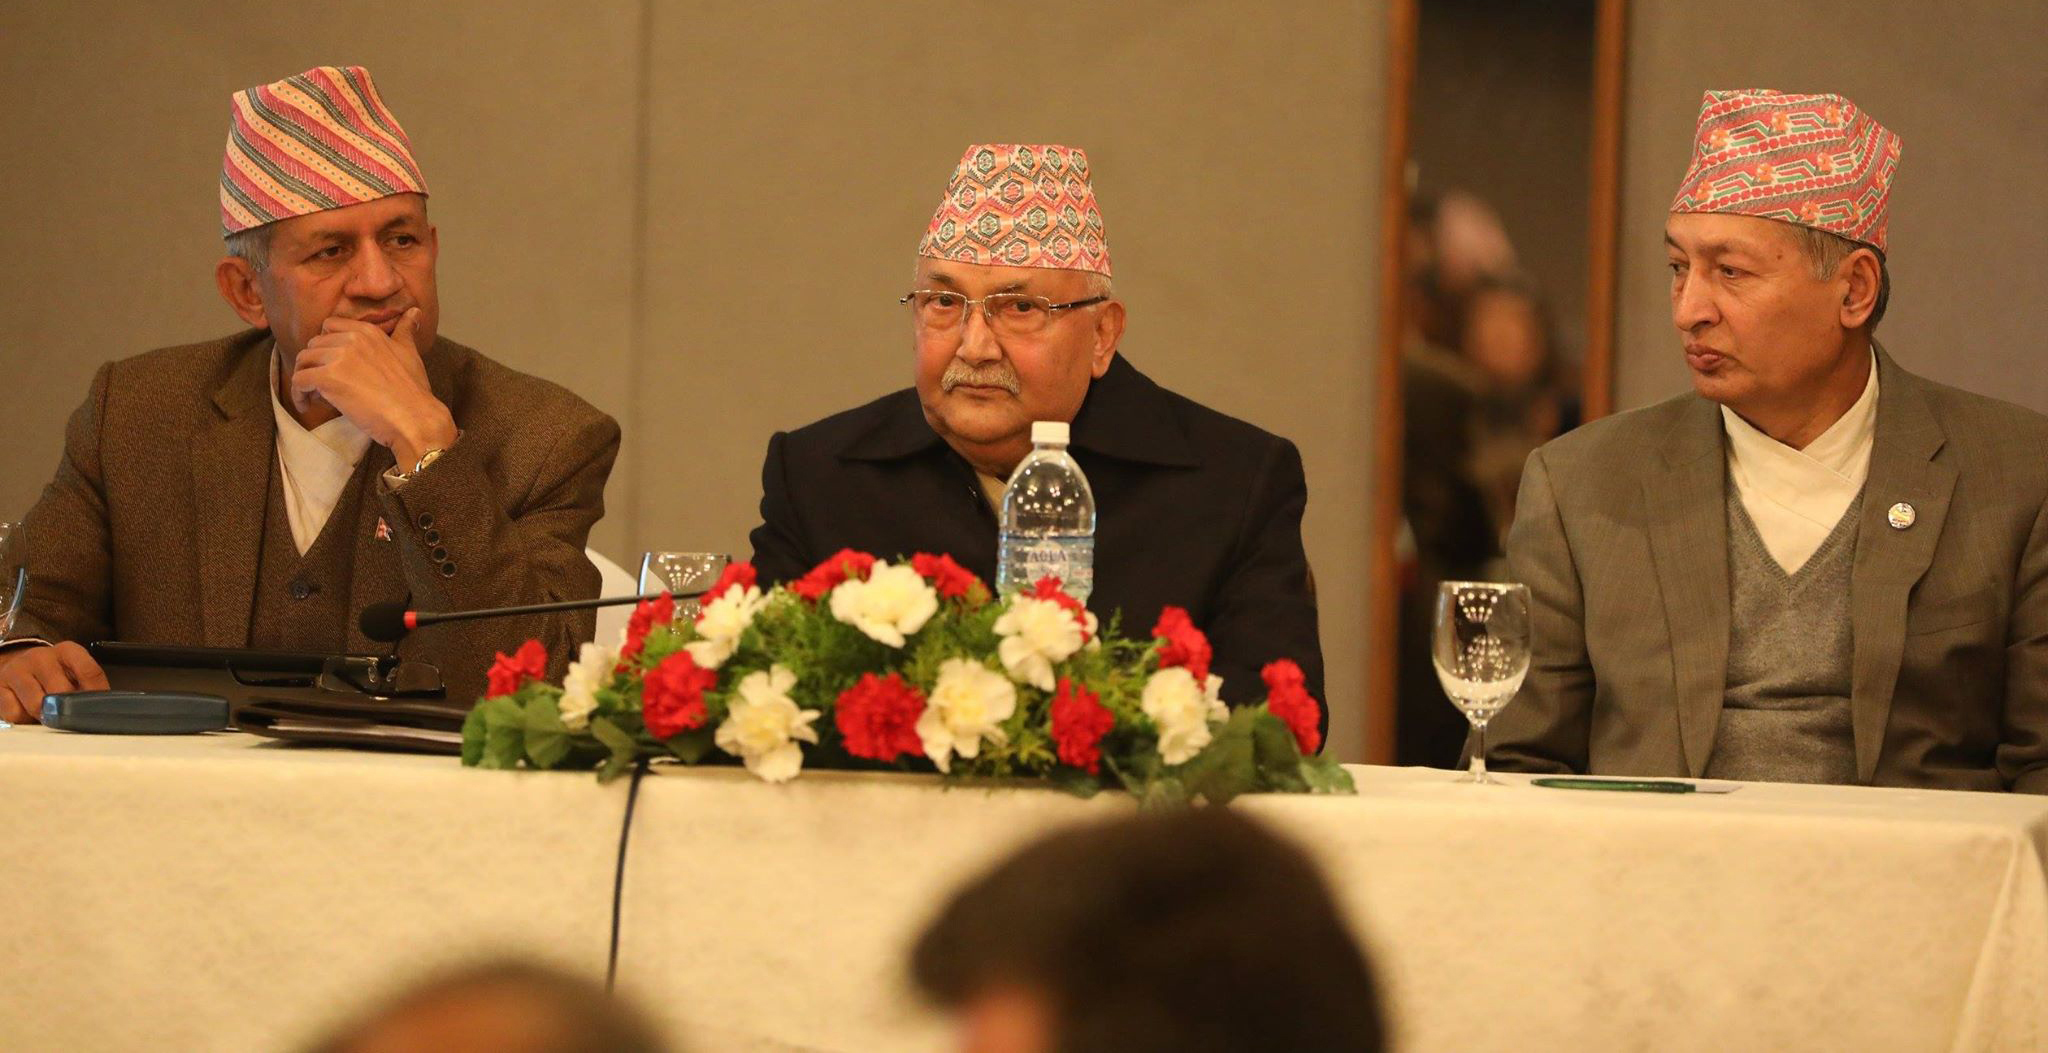 Foreign Minister reaffirms Nepal's foreign policy stand of Panchasheel